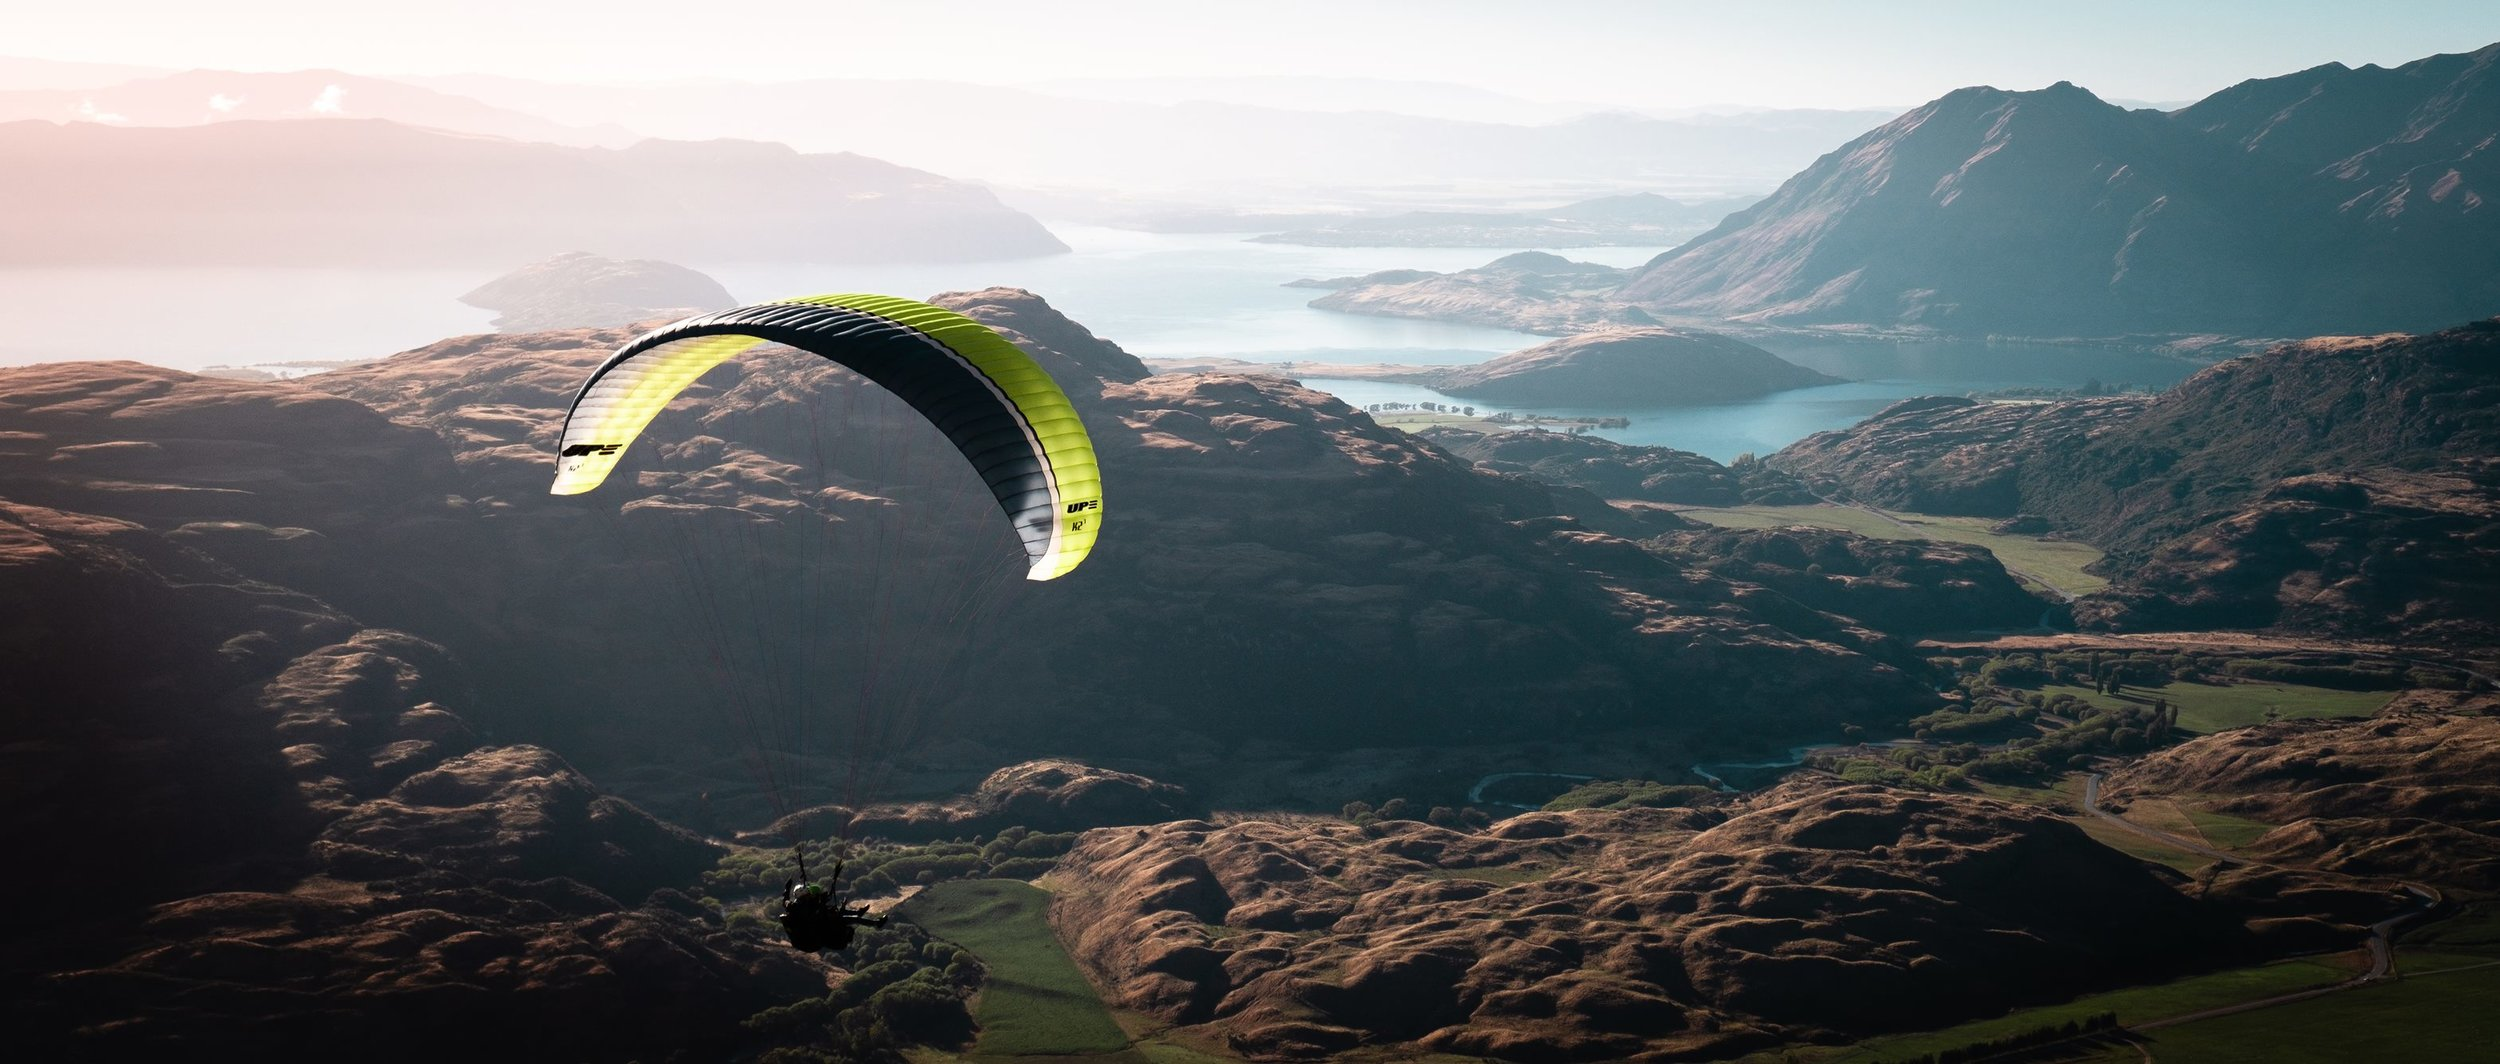 Prepare to be thrilled and amazed. Stunning wild scenery, twin waterfalls, plus flying over deer and wild falcon, beyond expectations. Wanaka Paragliding was in all an absolute highlight of our trip.